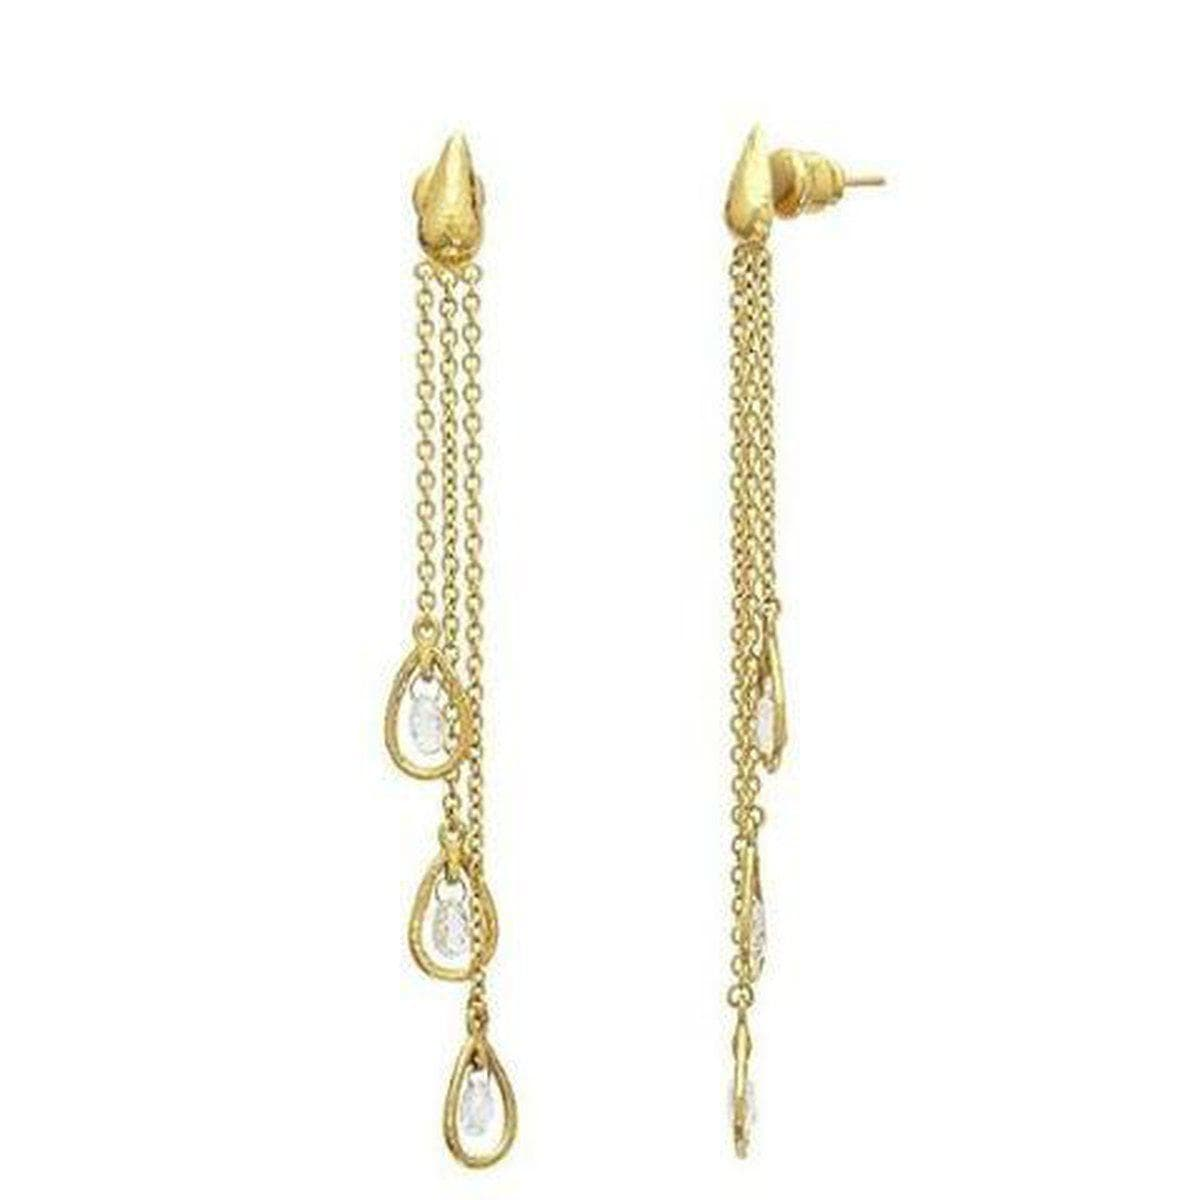 Delicate 24K Gold White Diamond Earrings - TDE-3DIB-3FR-GRCH-GURHAN-Renee Taylor Gallery